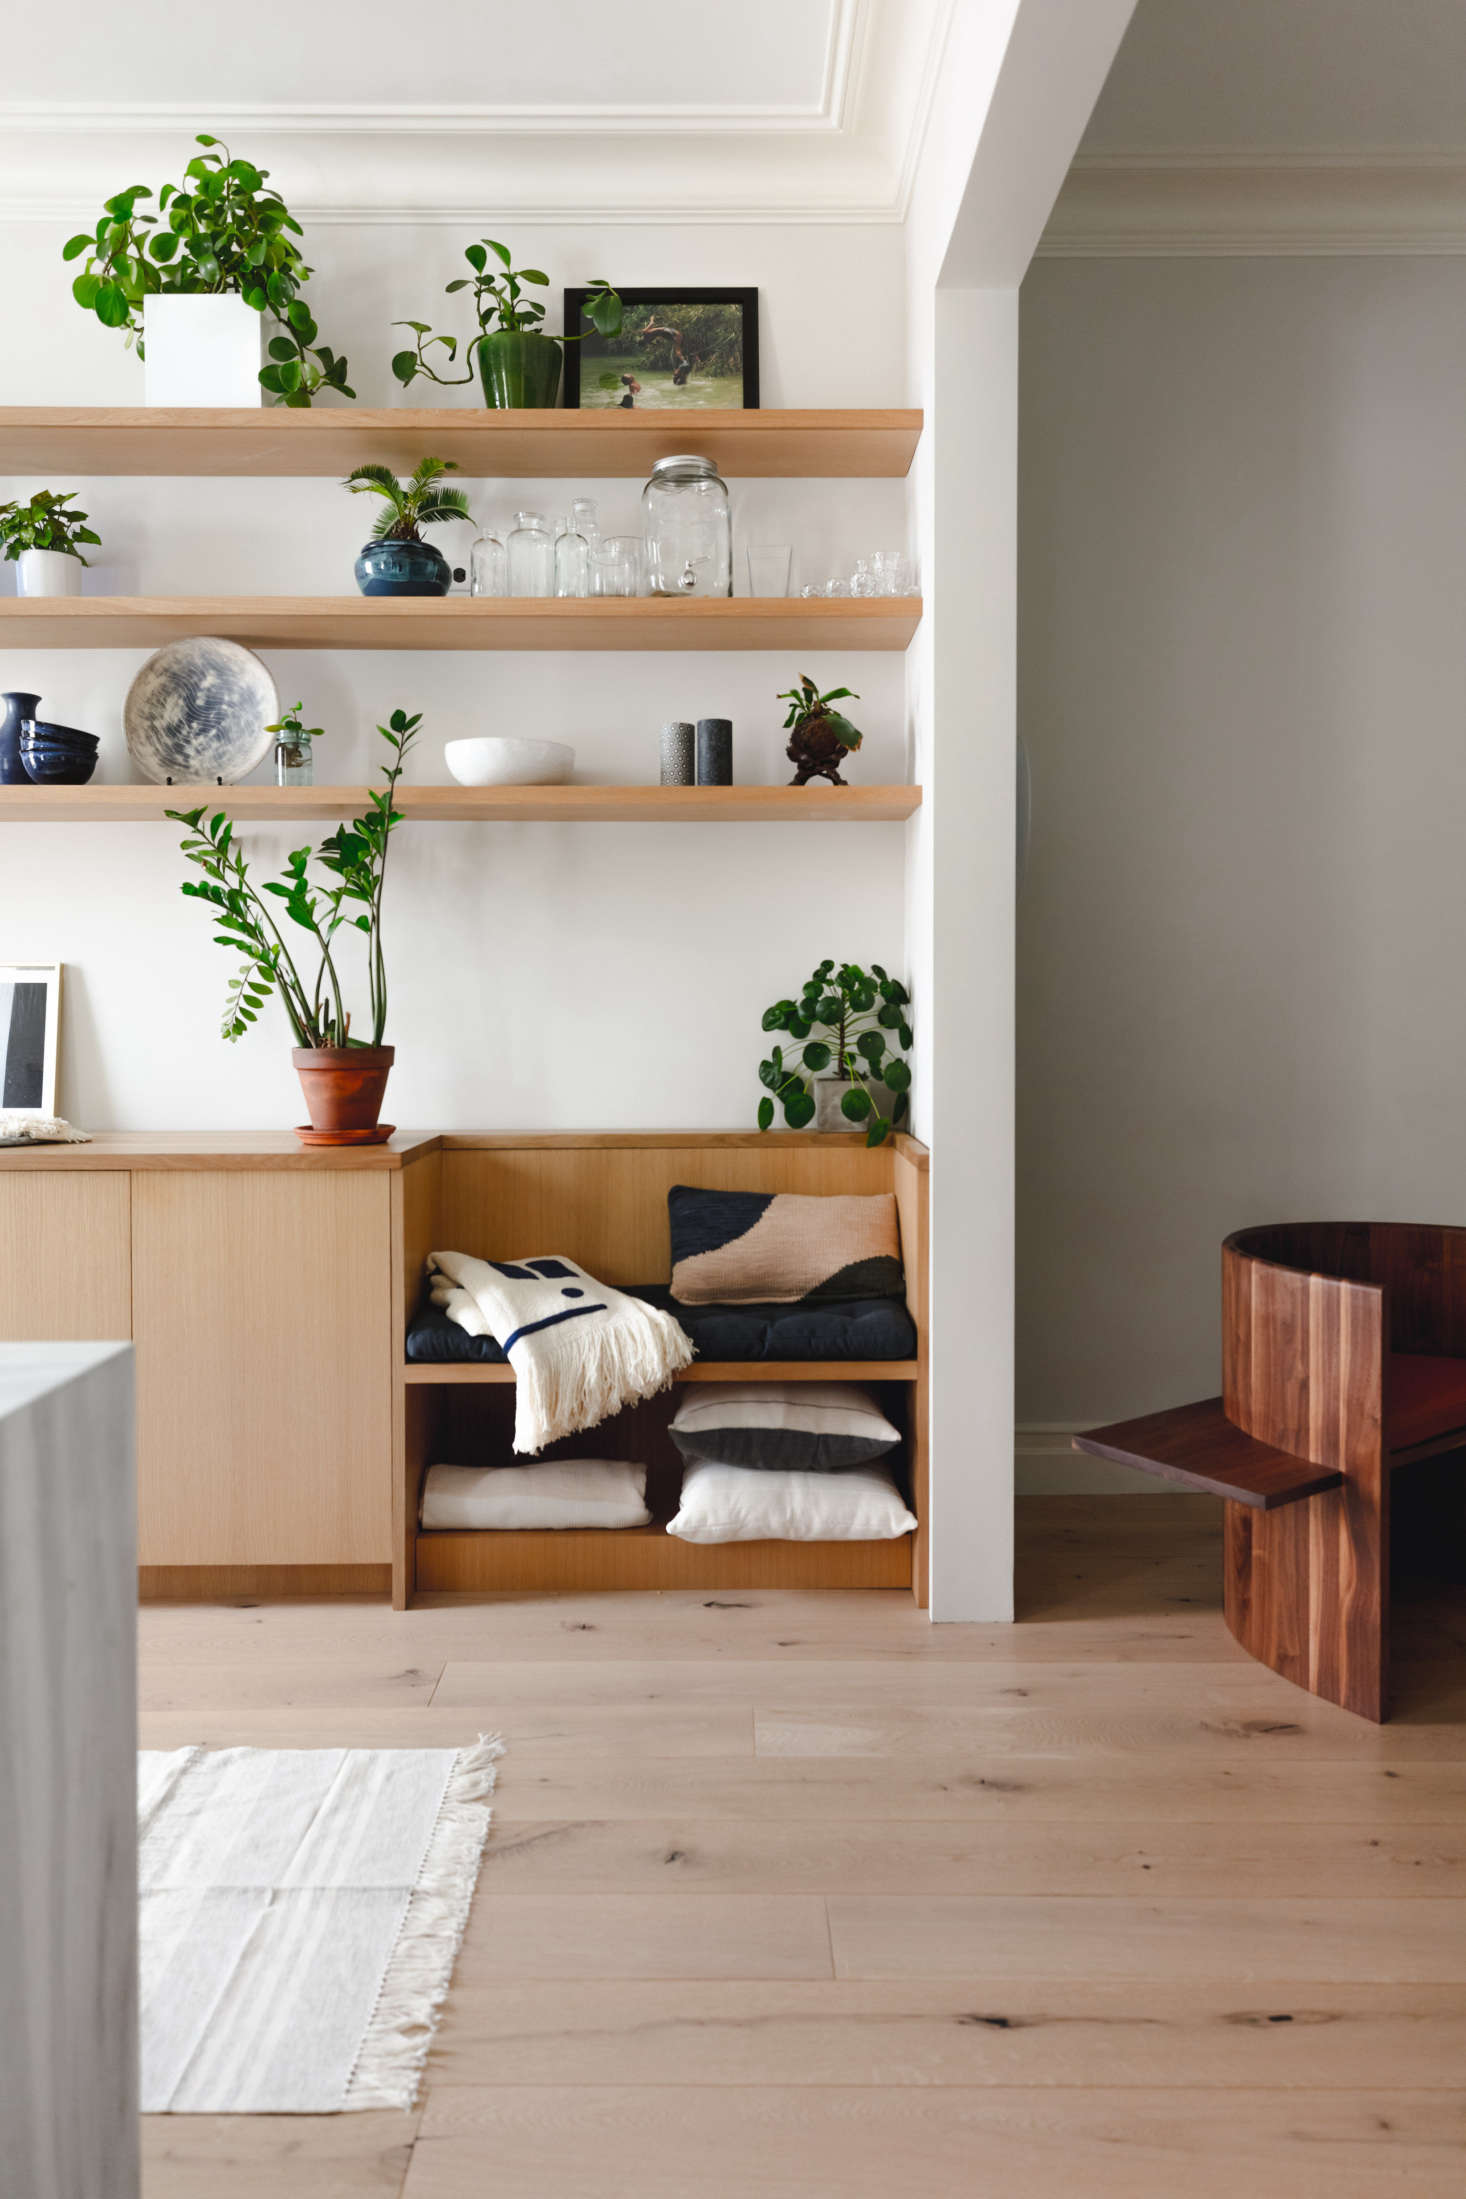 """Photograph by Hagan Hinshaw of Blurry Hinge, courtesy of Shapeless Studio, from Kitchen of the Week: A Brooklyn Kitchen Designed Around the Keywords """"Social"""" and """"Minimal but Warm,"""""""